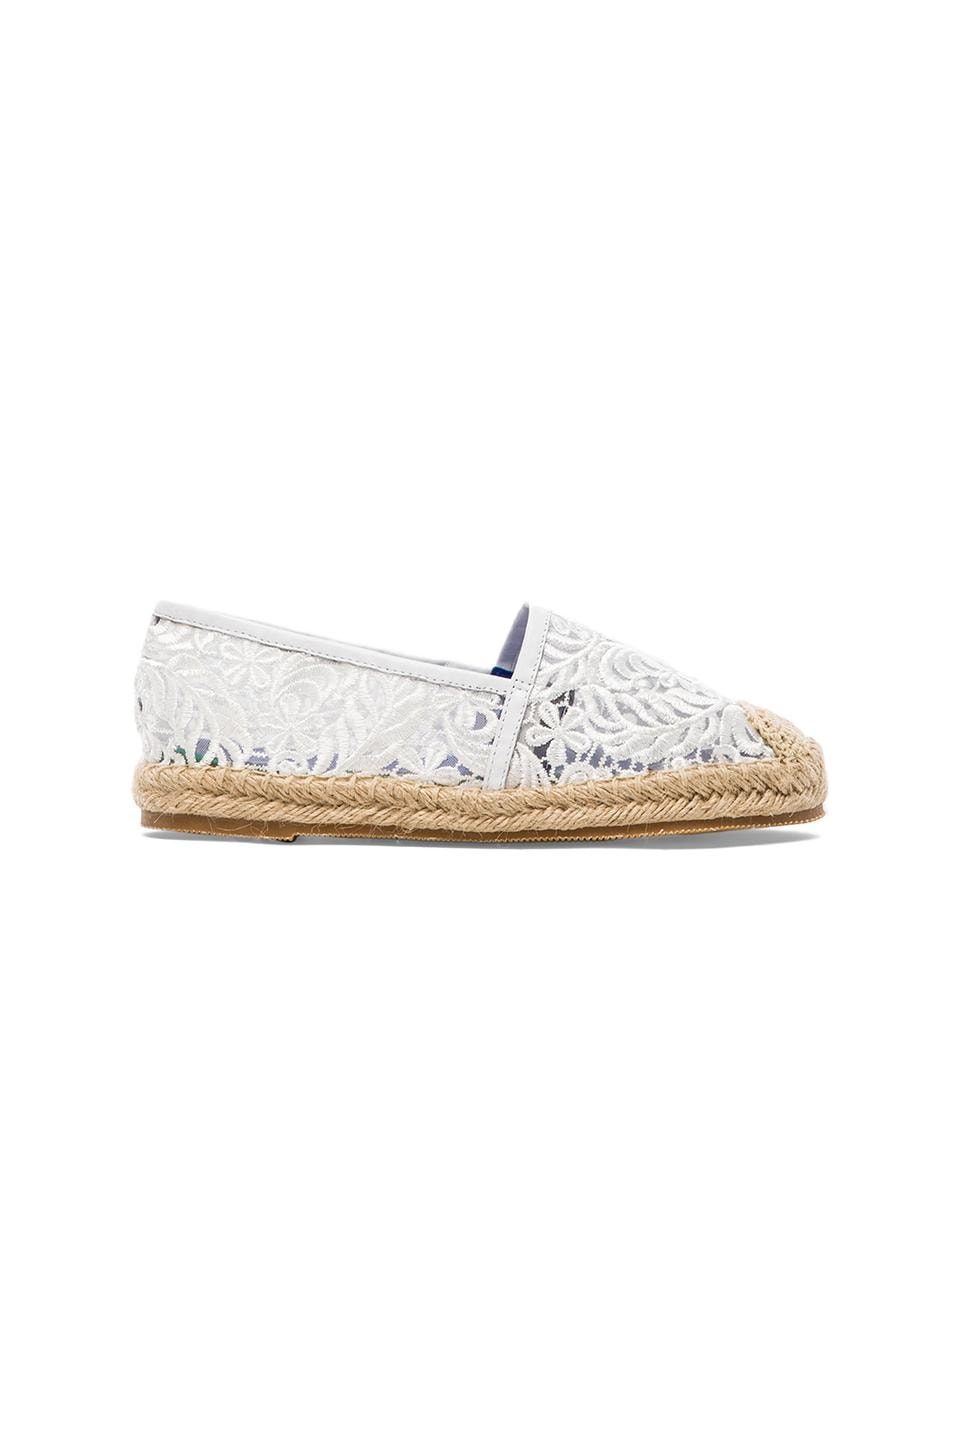 Jeffrey Campbell Nia Flat in White Lace